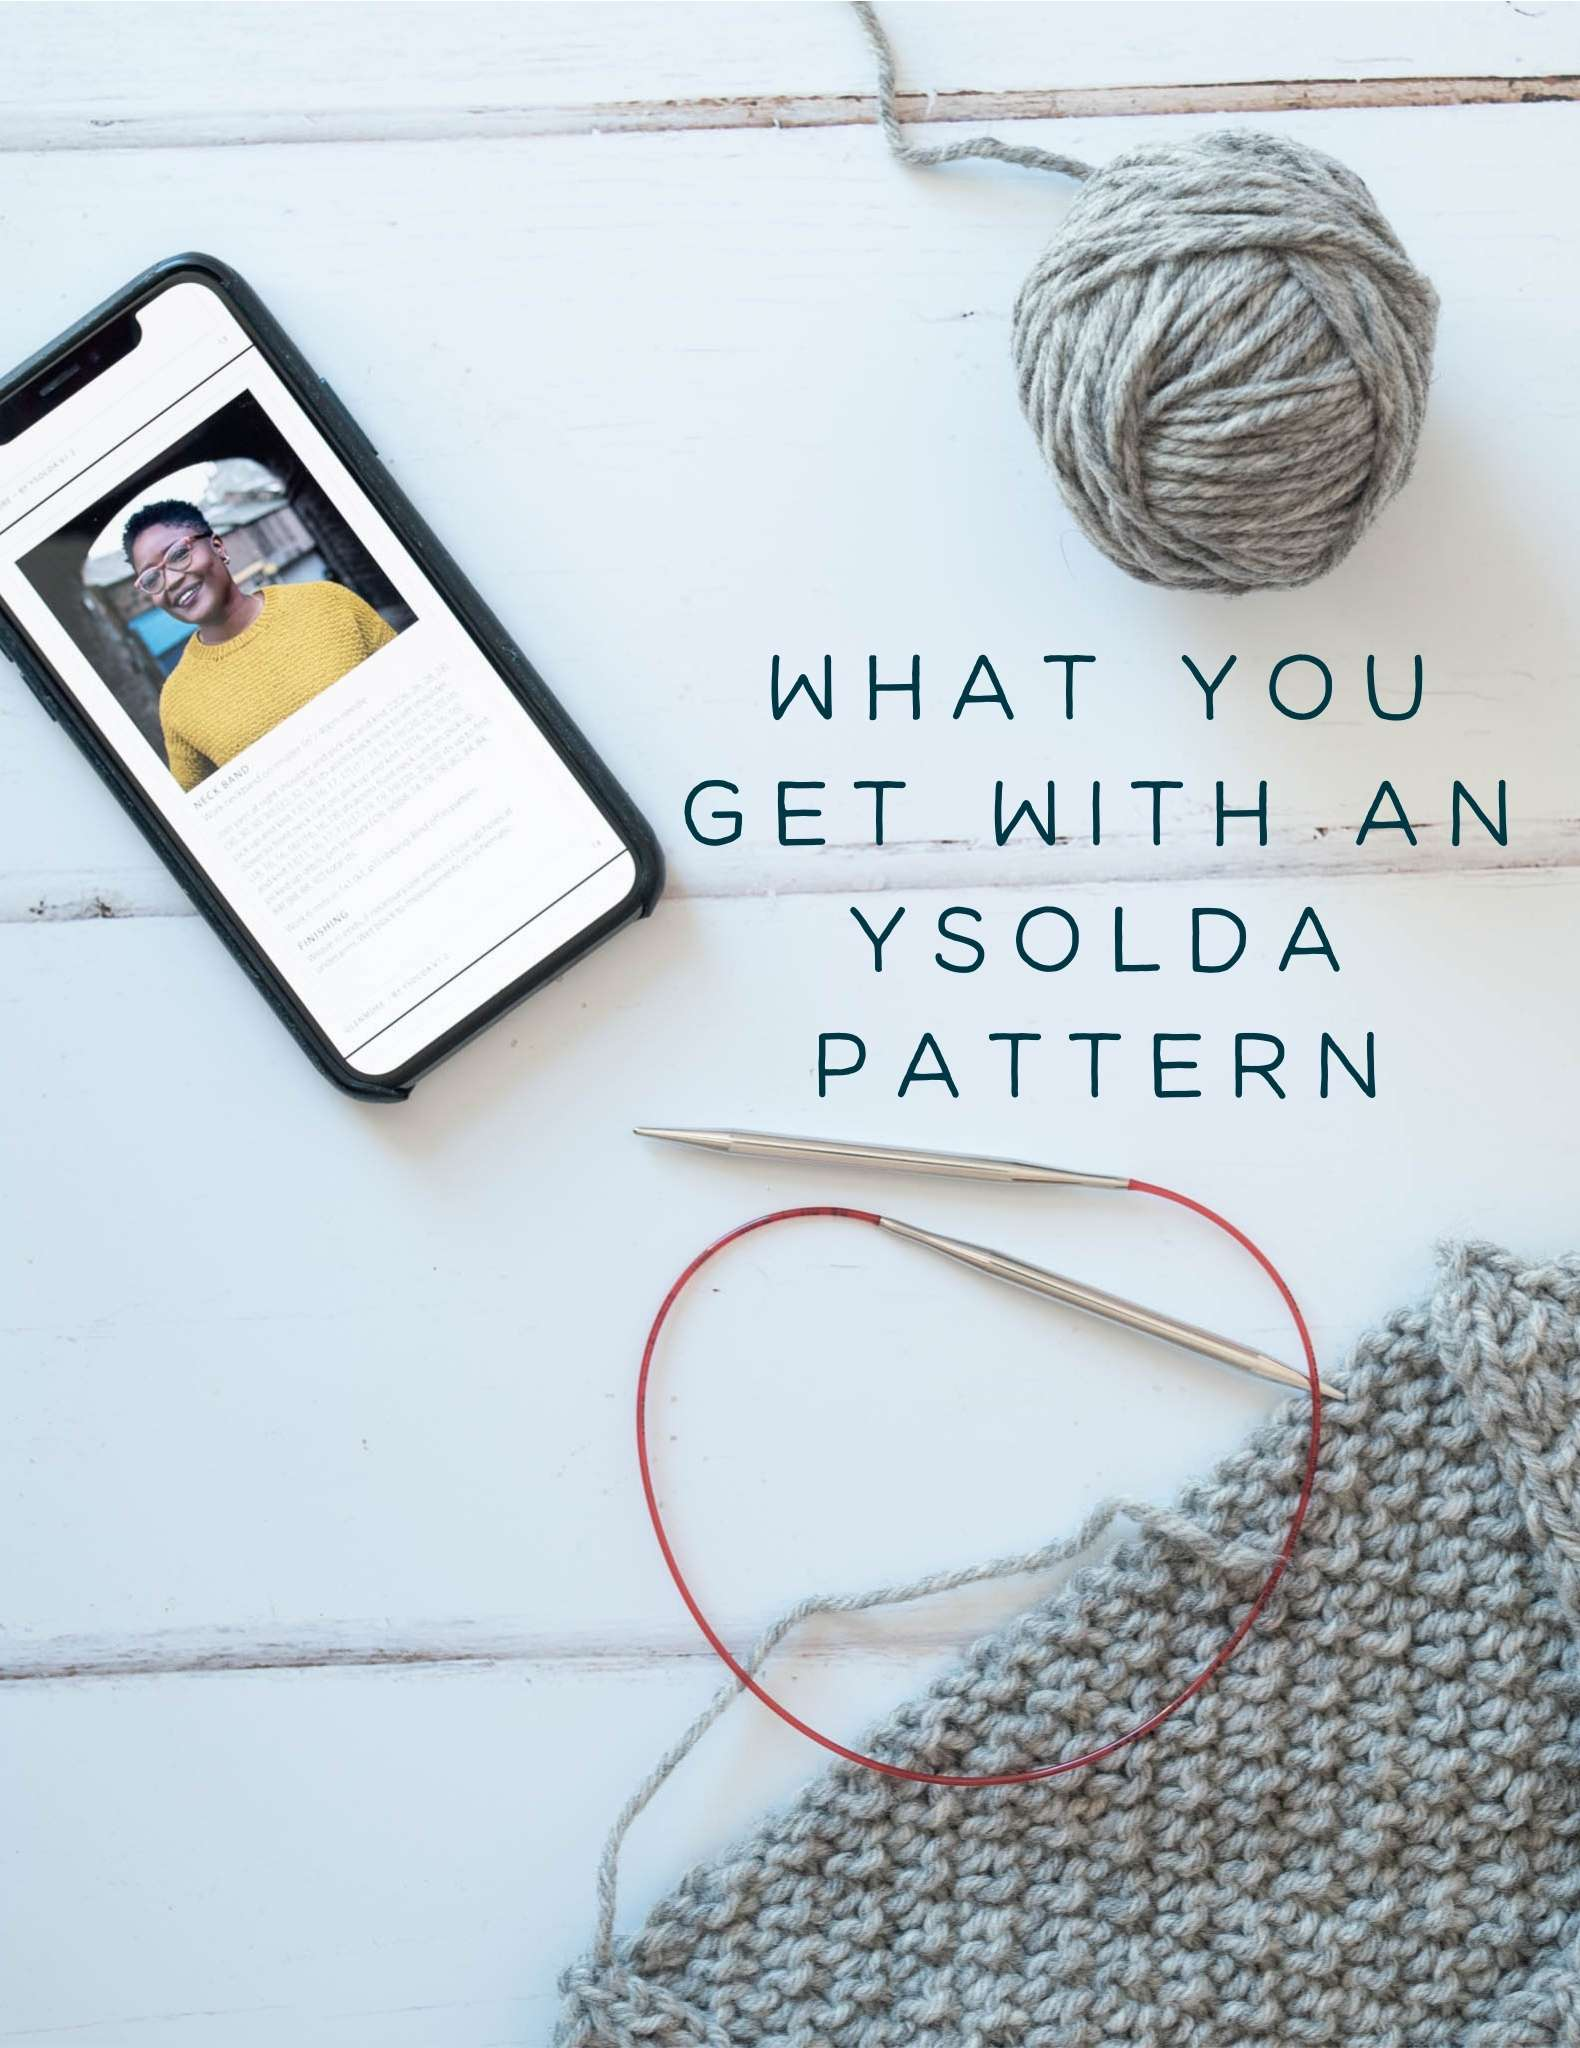 What you get with an Ysolda pattern